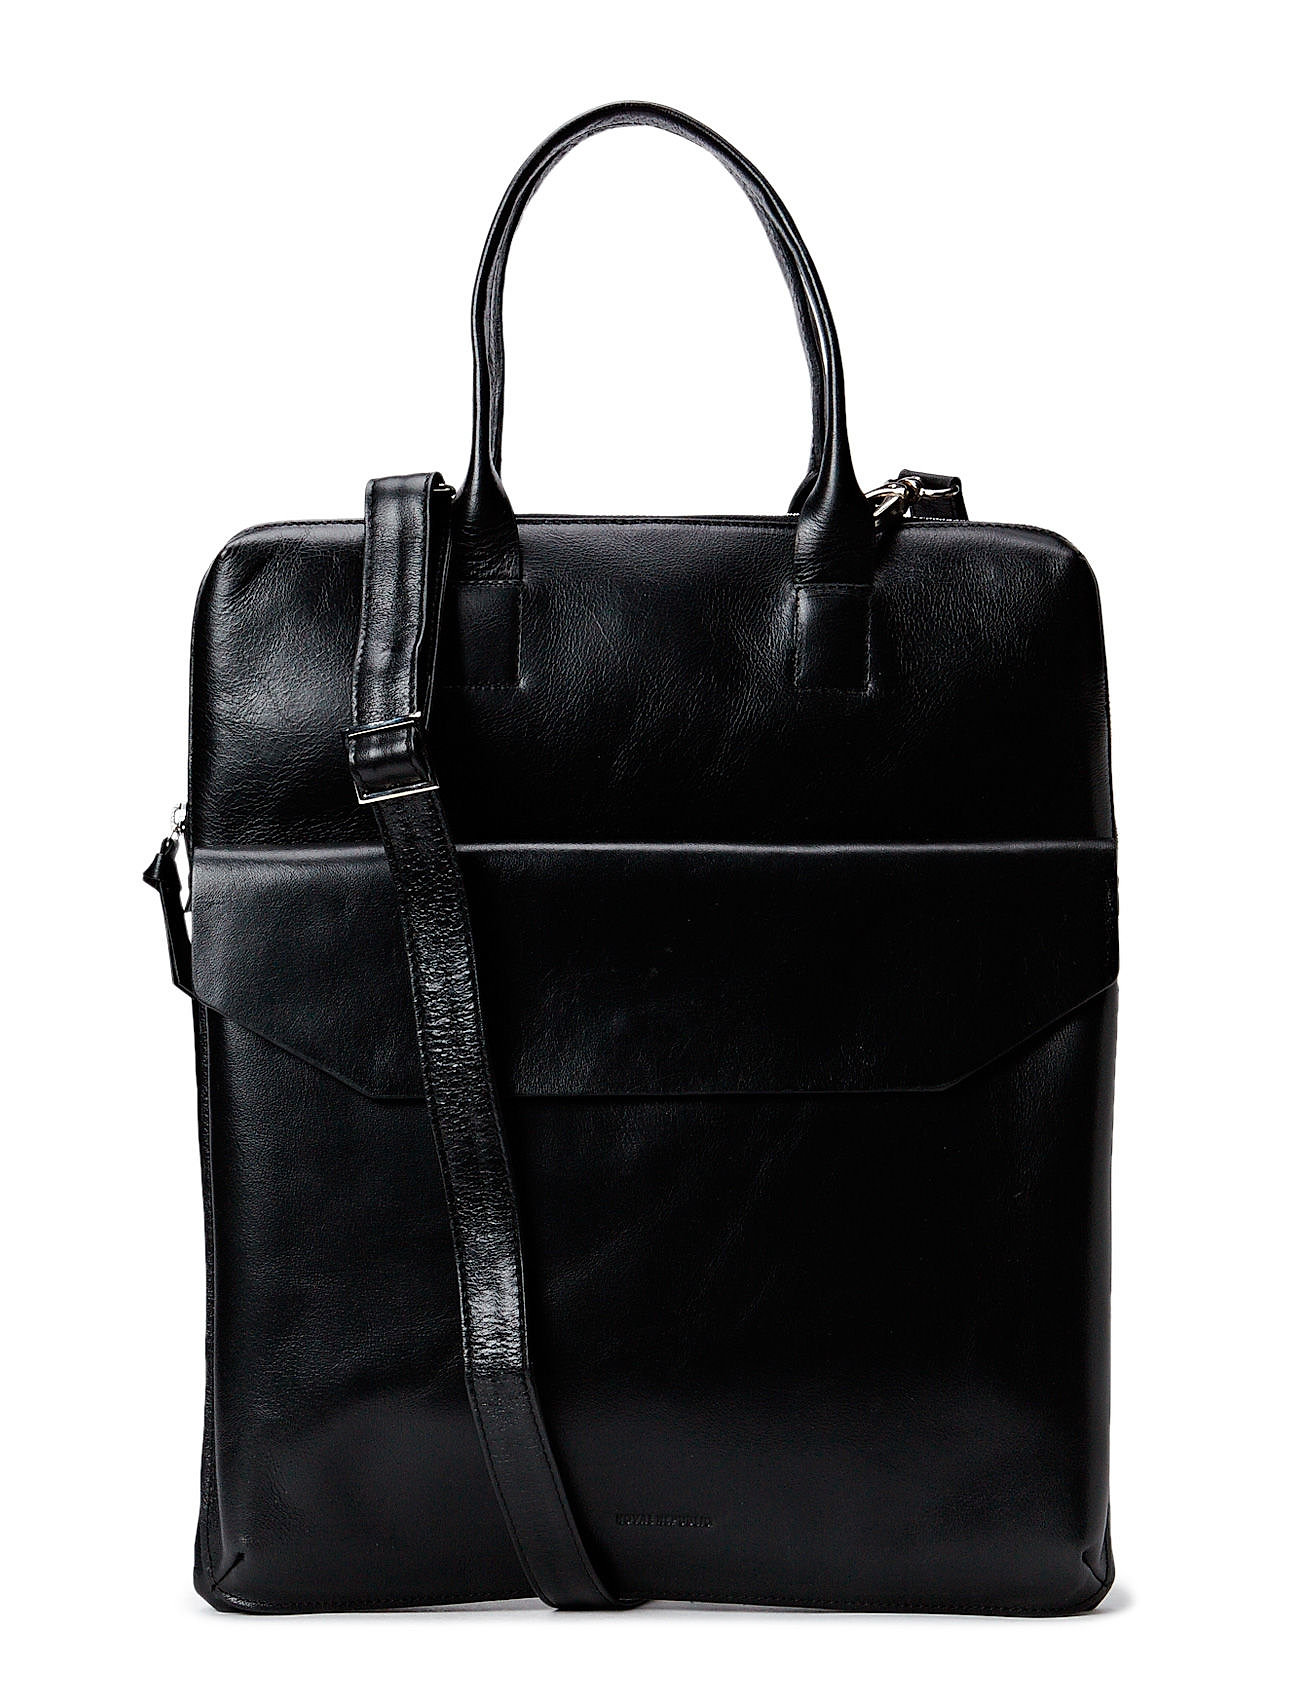 Royal RepubliQ New Courier bag - BLACK